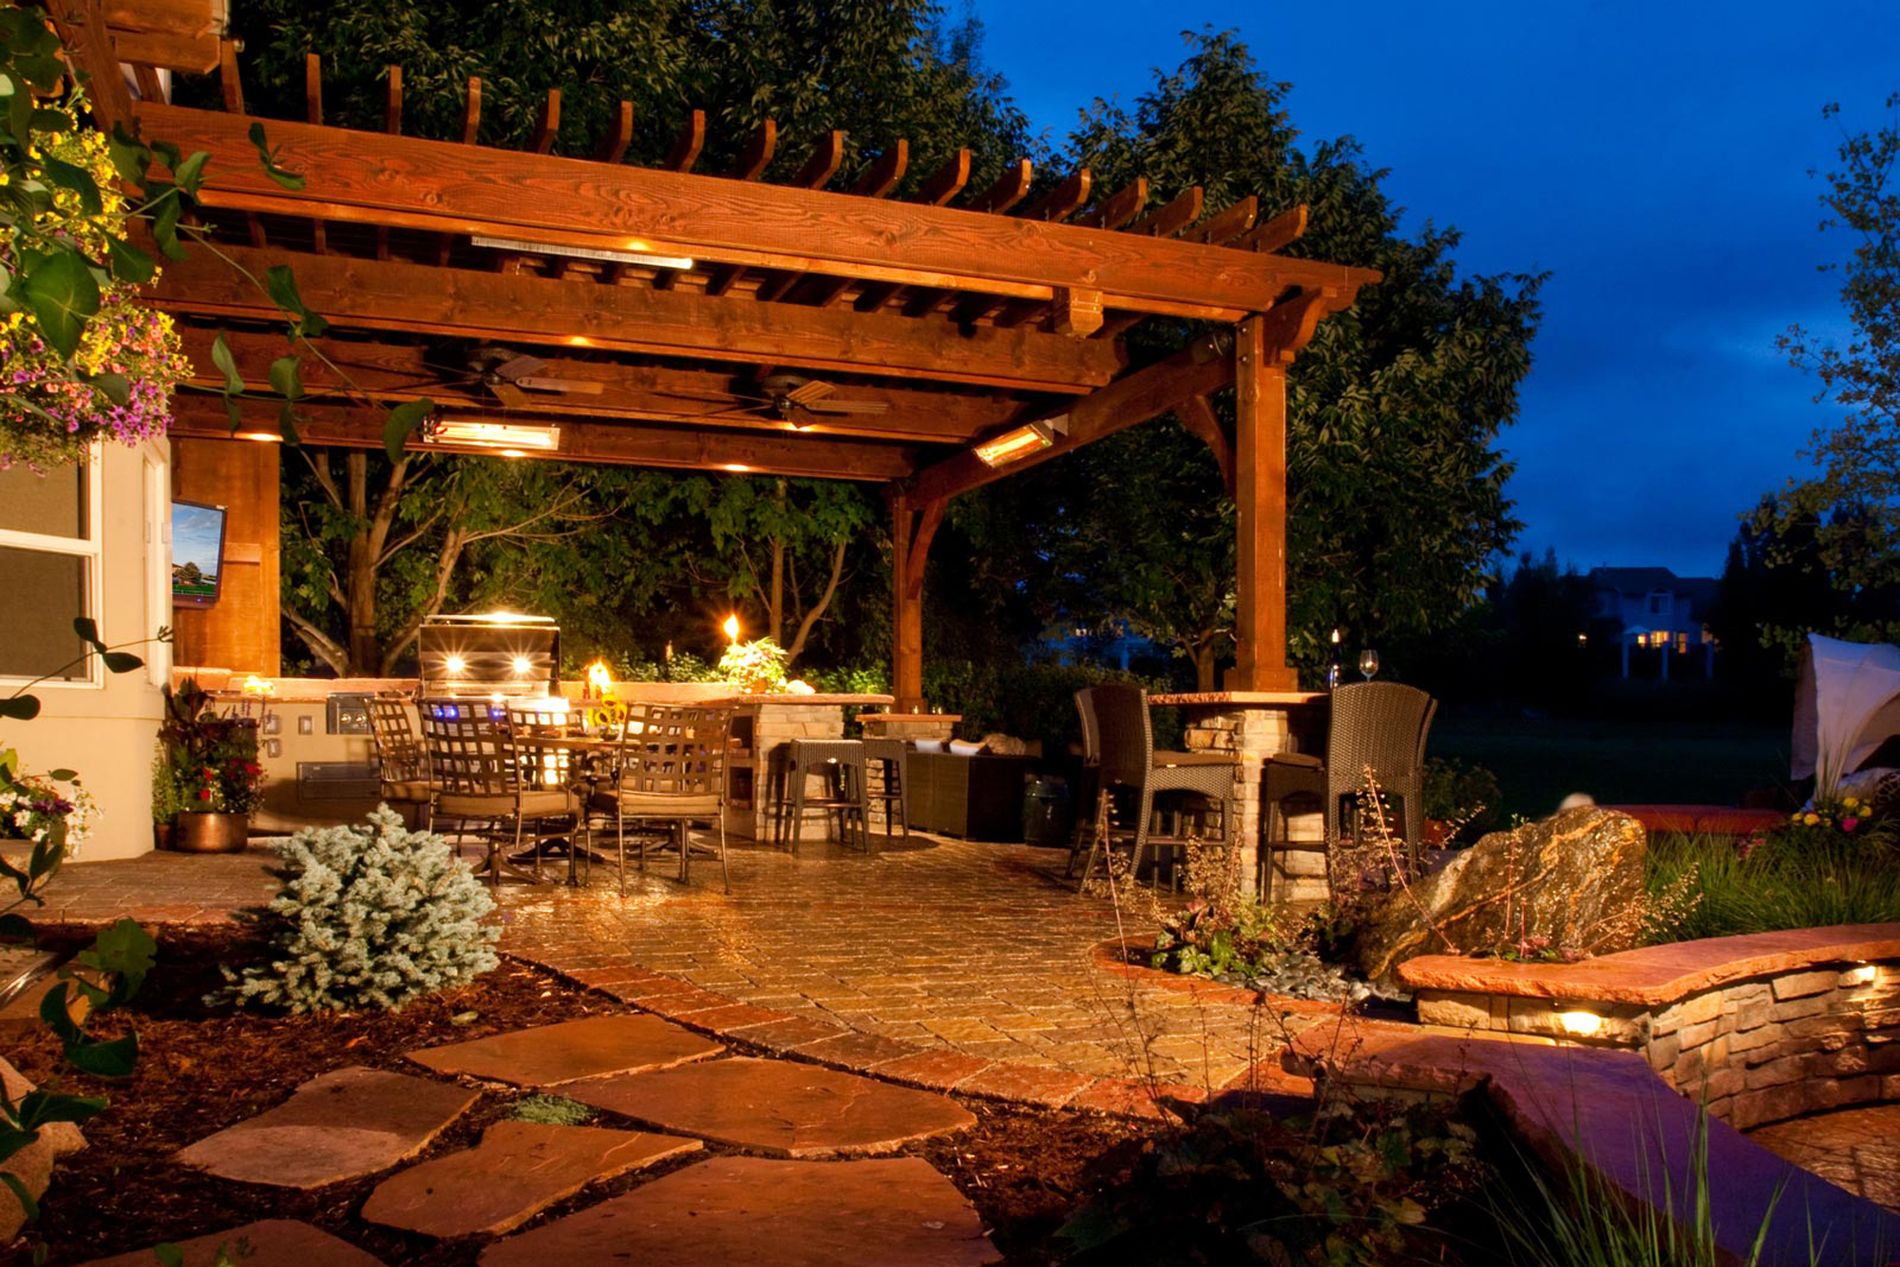 Outdoor Kitchen With Paver Patio and Shade Structure with Landscape Lighting